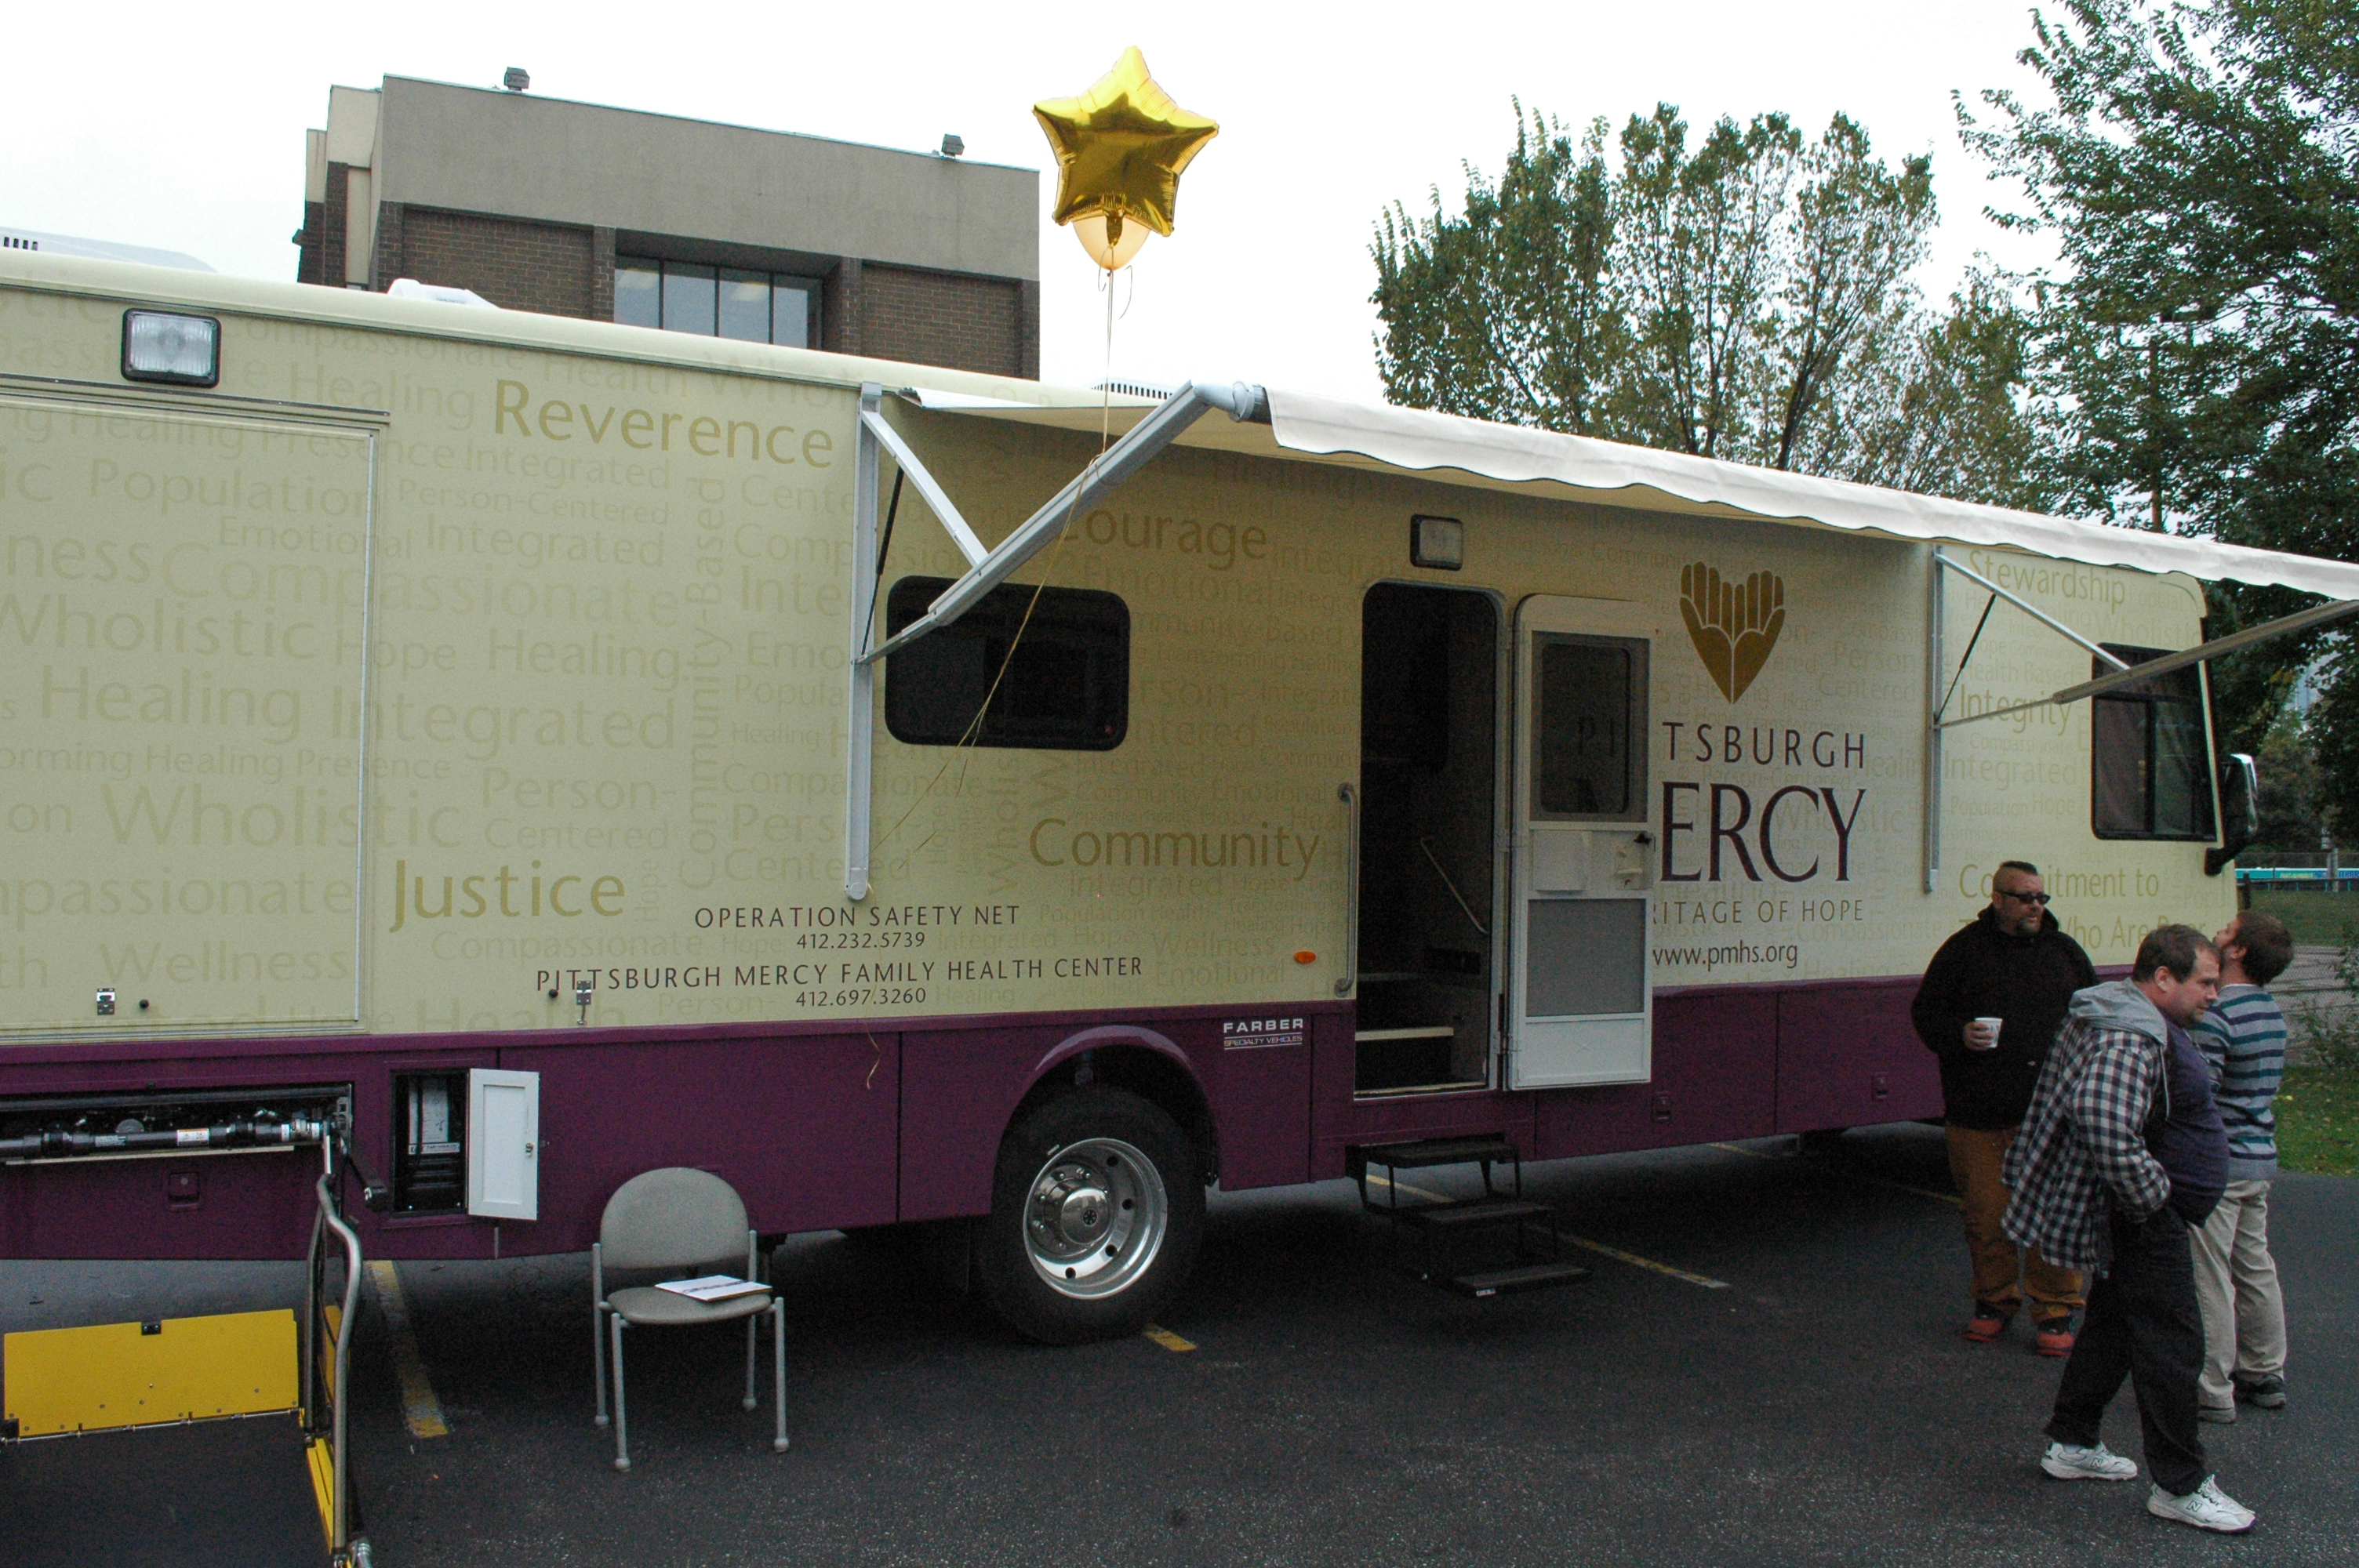 Pittsburgh Mercy reveals new mobile medical unit – The